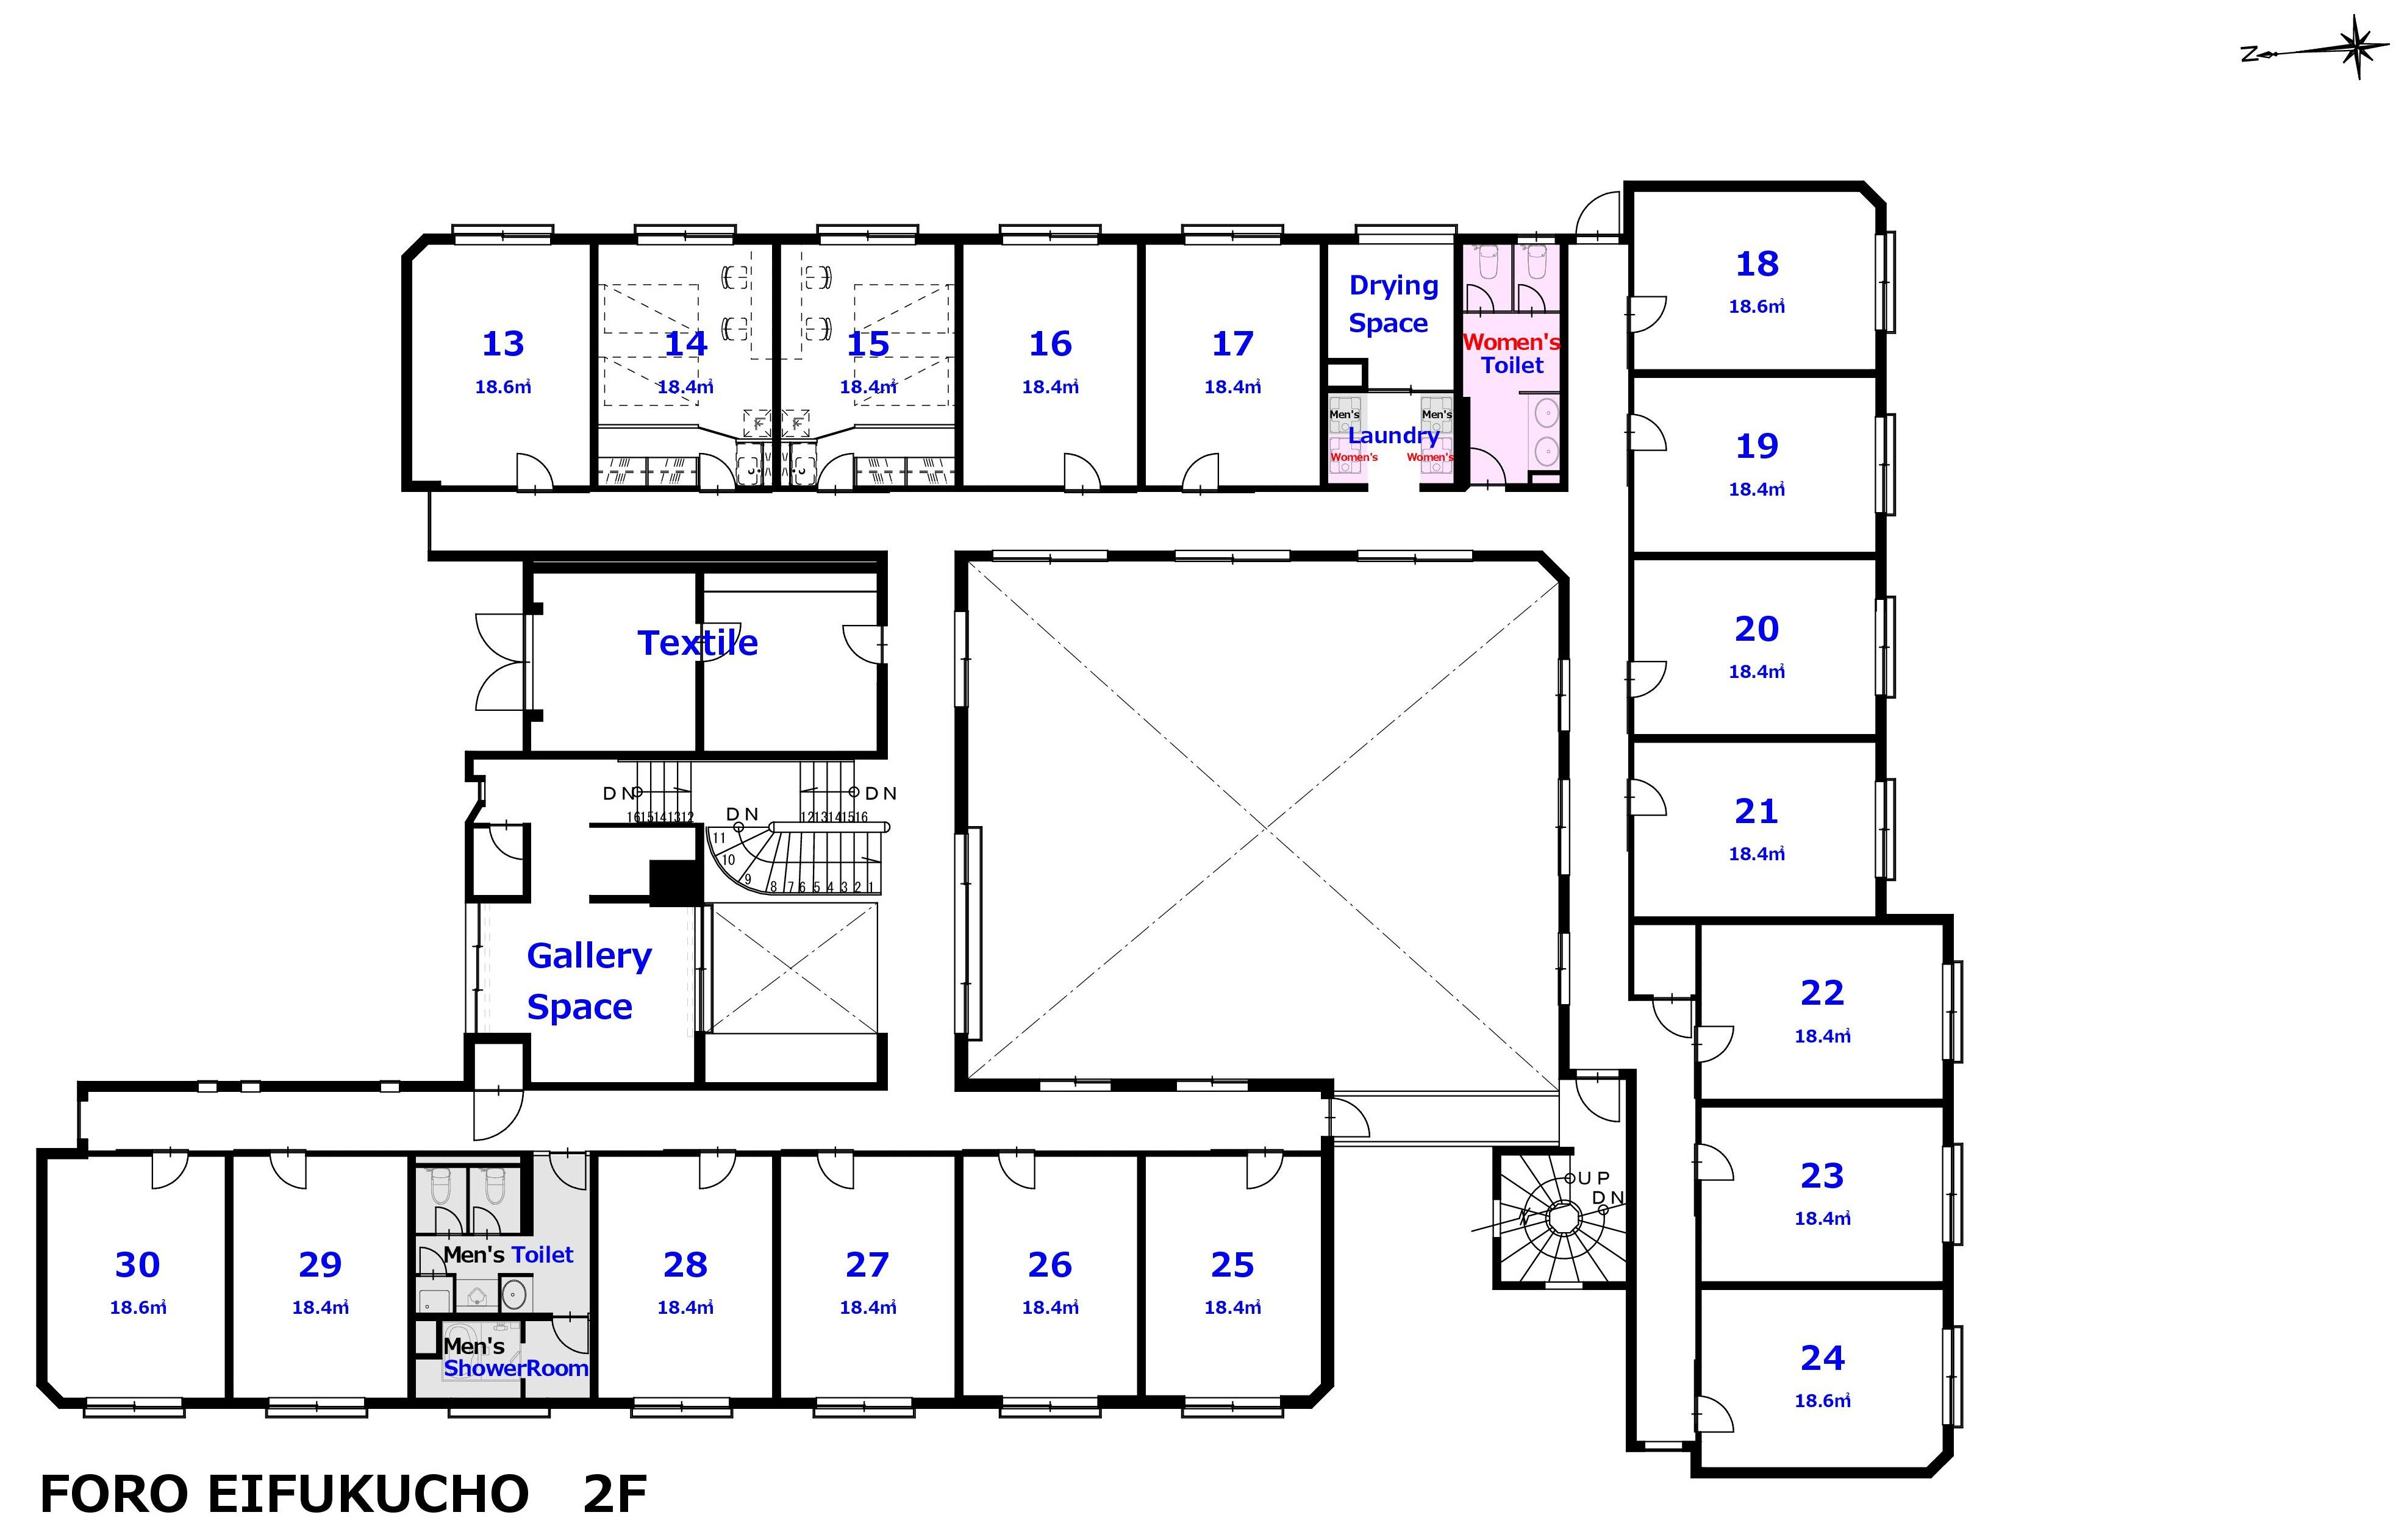 guesthouse sharehouse FORO Eifukucho floorplan2